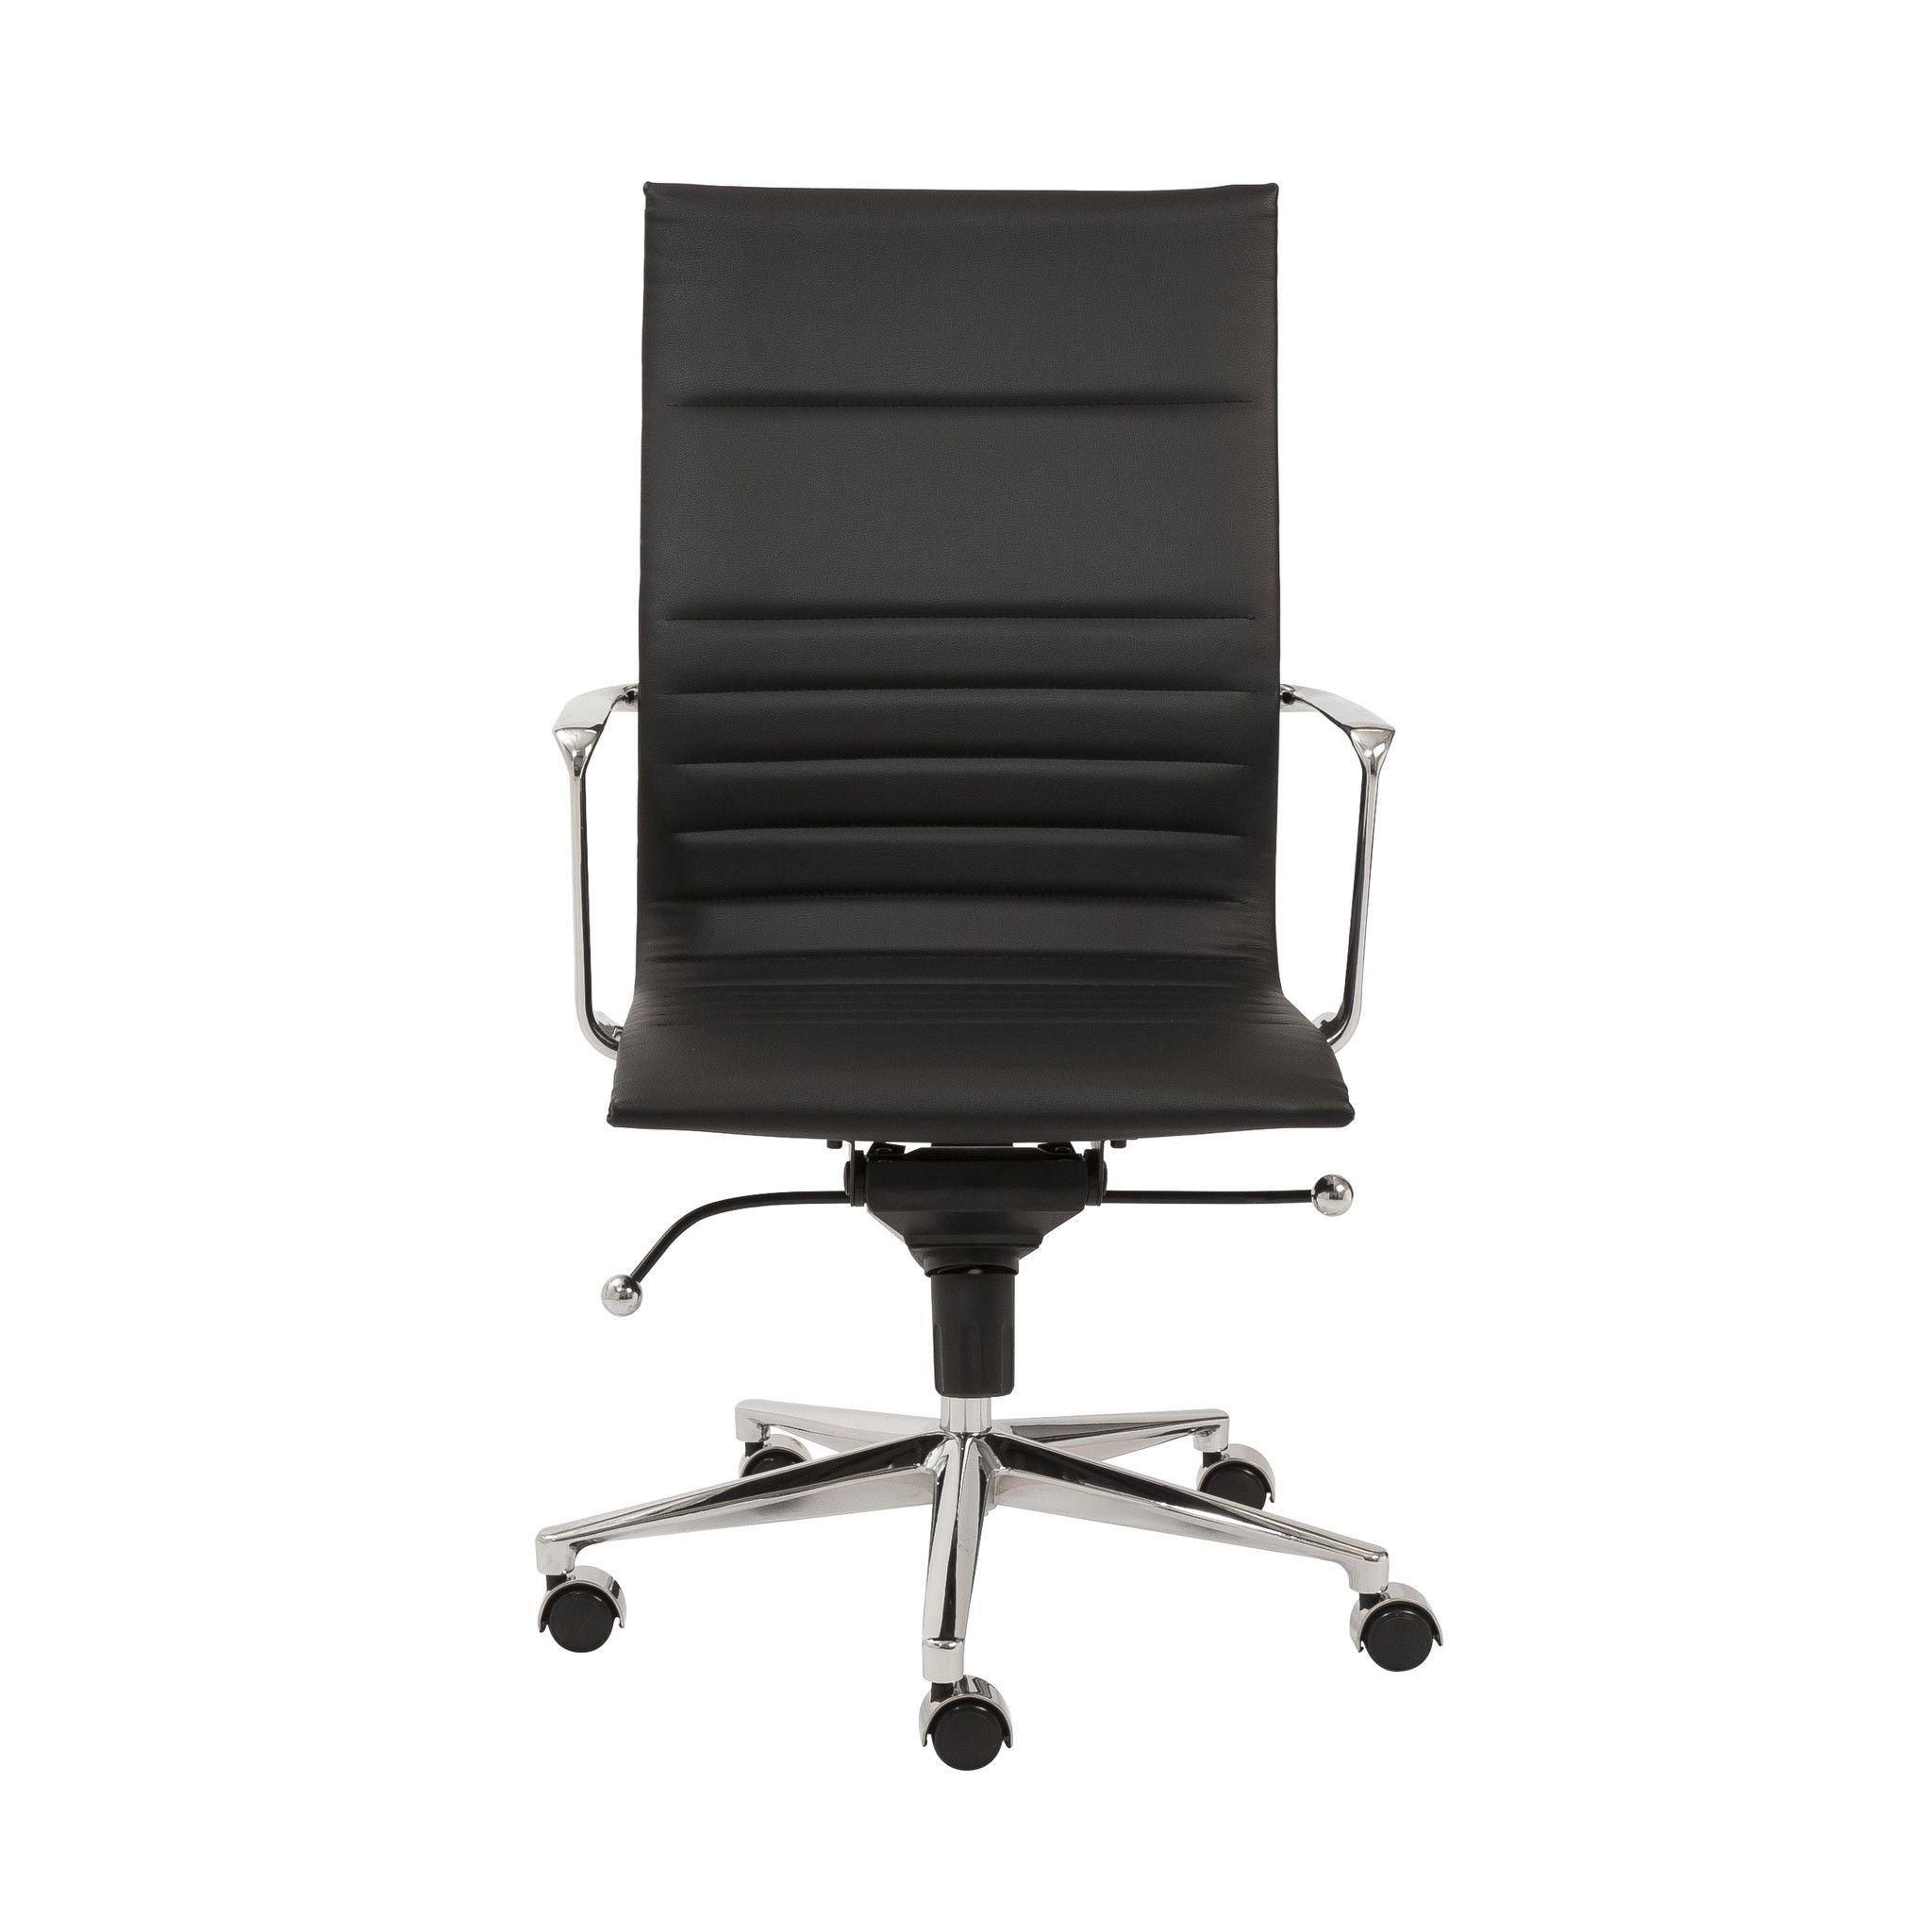 office chair upholstery. Eurostyle Kyler High-Back Leatherette Office Chair With Arms Upholstery: Upholstery